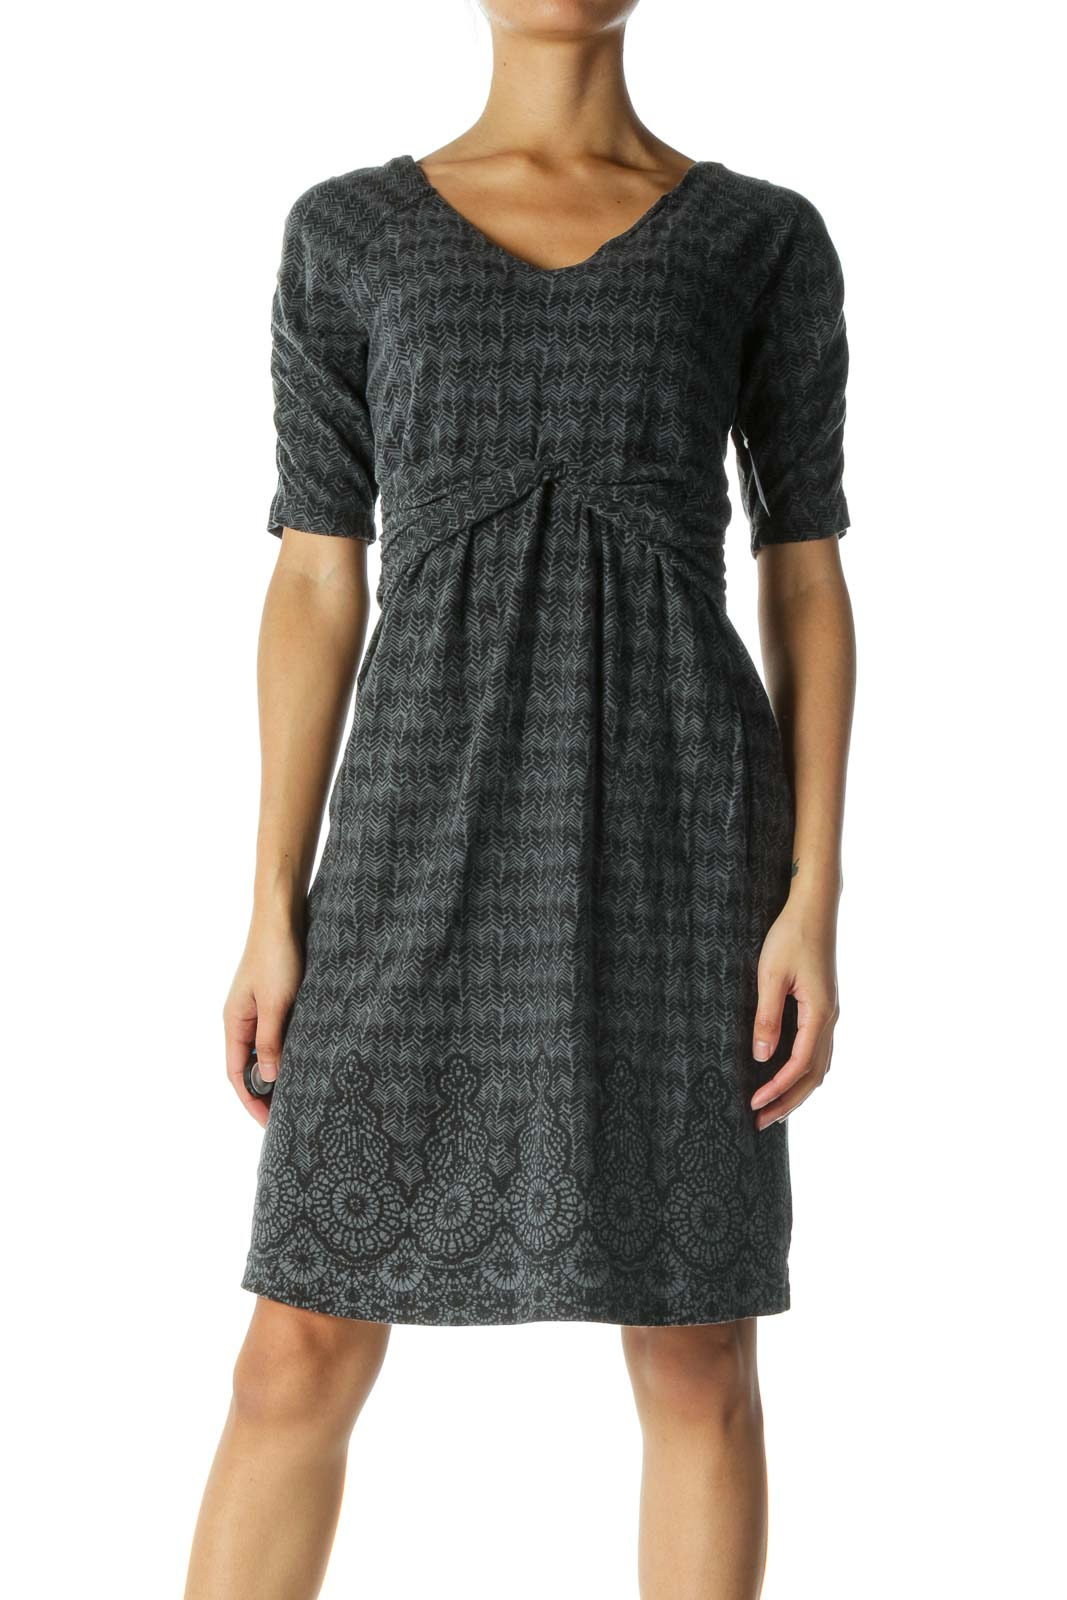 Black and Gray Print Dress